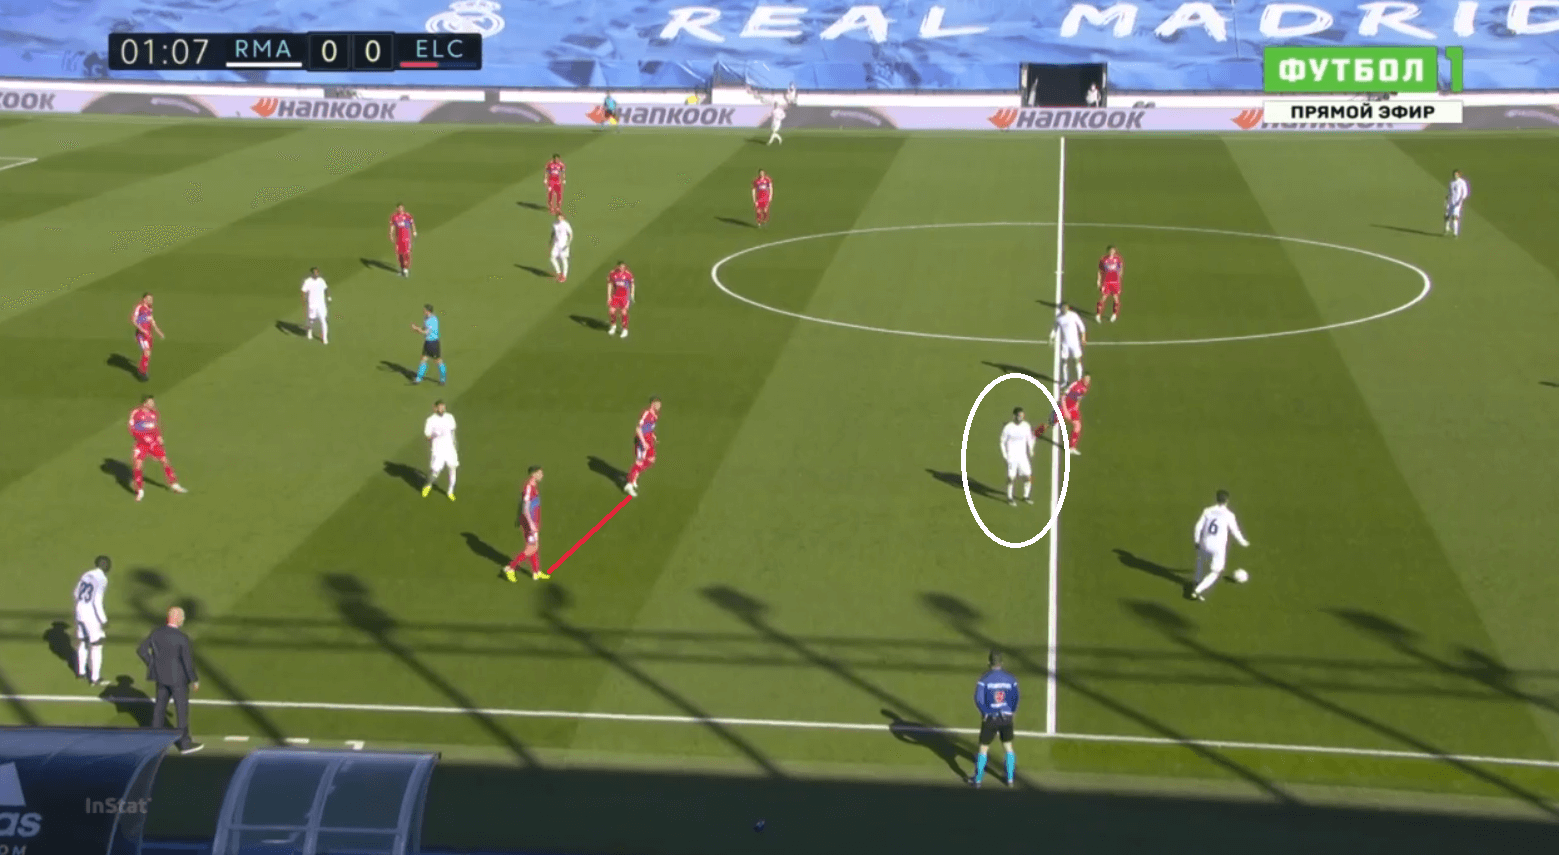 How Elche's disciplined low-block restricted Madrid to very low quality shots. - tactical analysis tactics